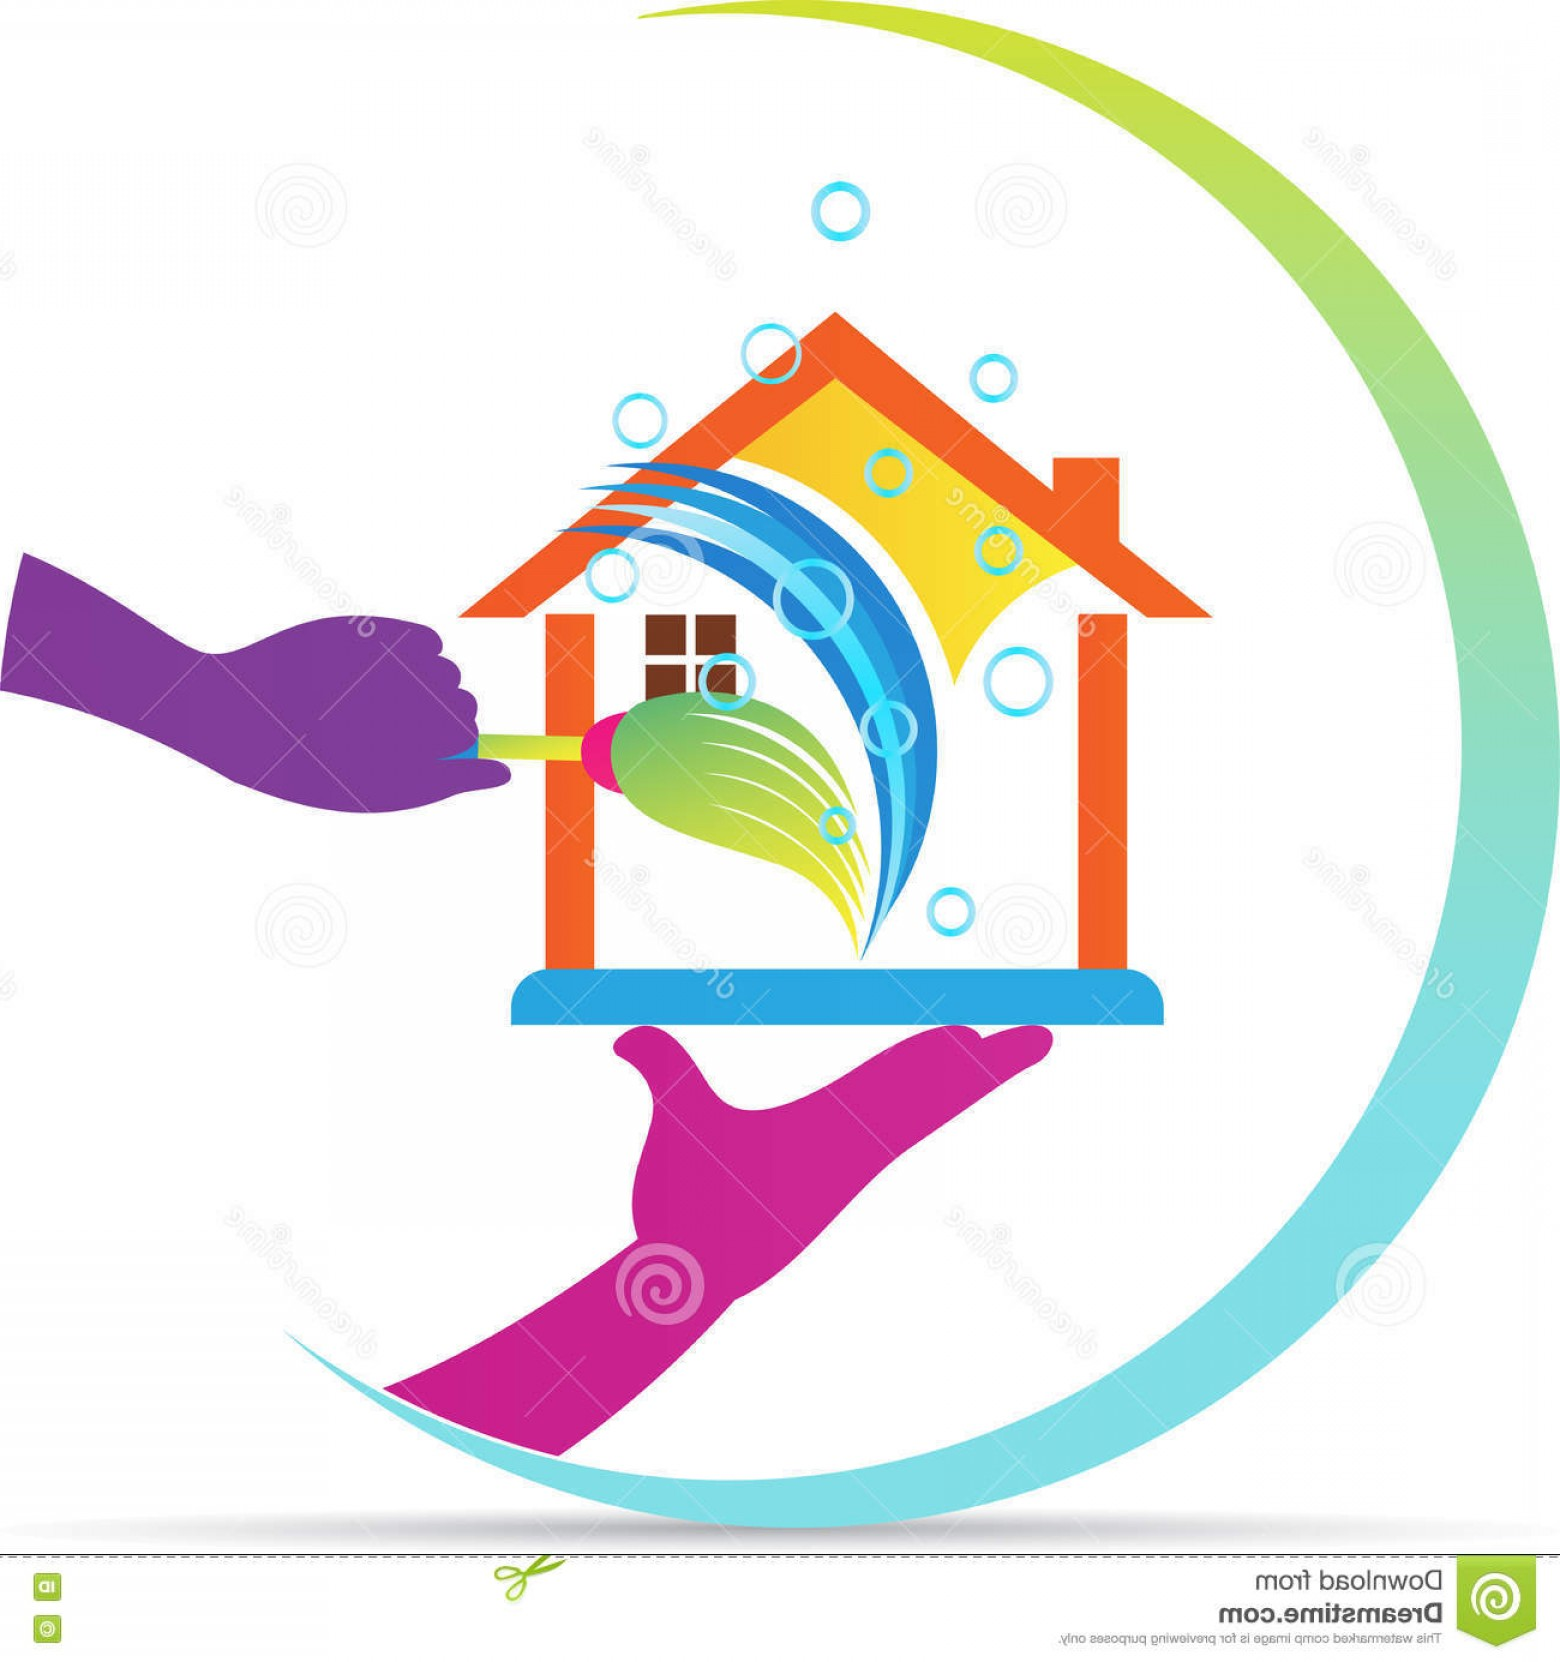 Cleaning Logo Vector Art: Stock Illustration Home Cleaning Service Logo Vector Drawing Represents Design Image